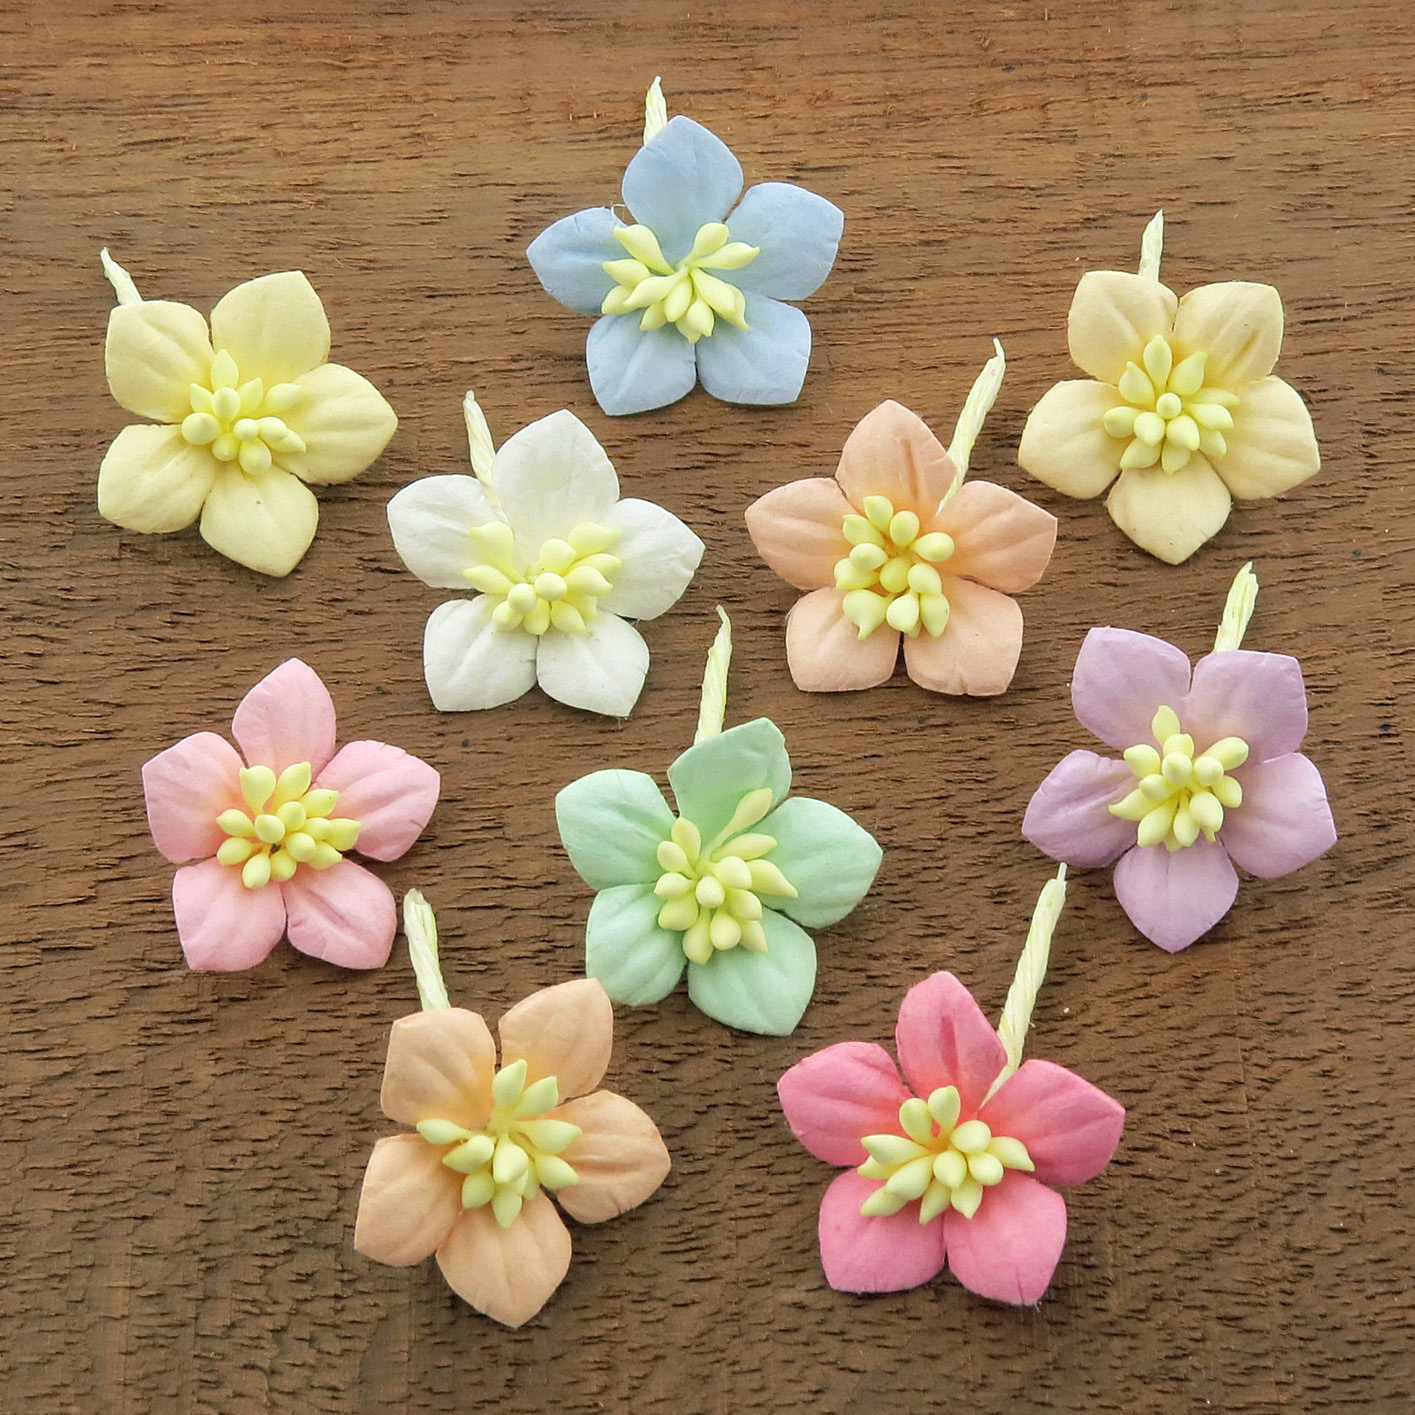 MIXED PASTEL COTTON STEM MULBERRY PAPER FLOWERS - SET C